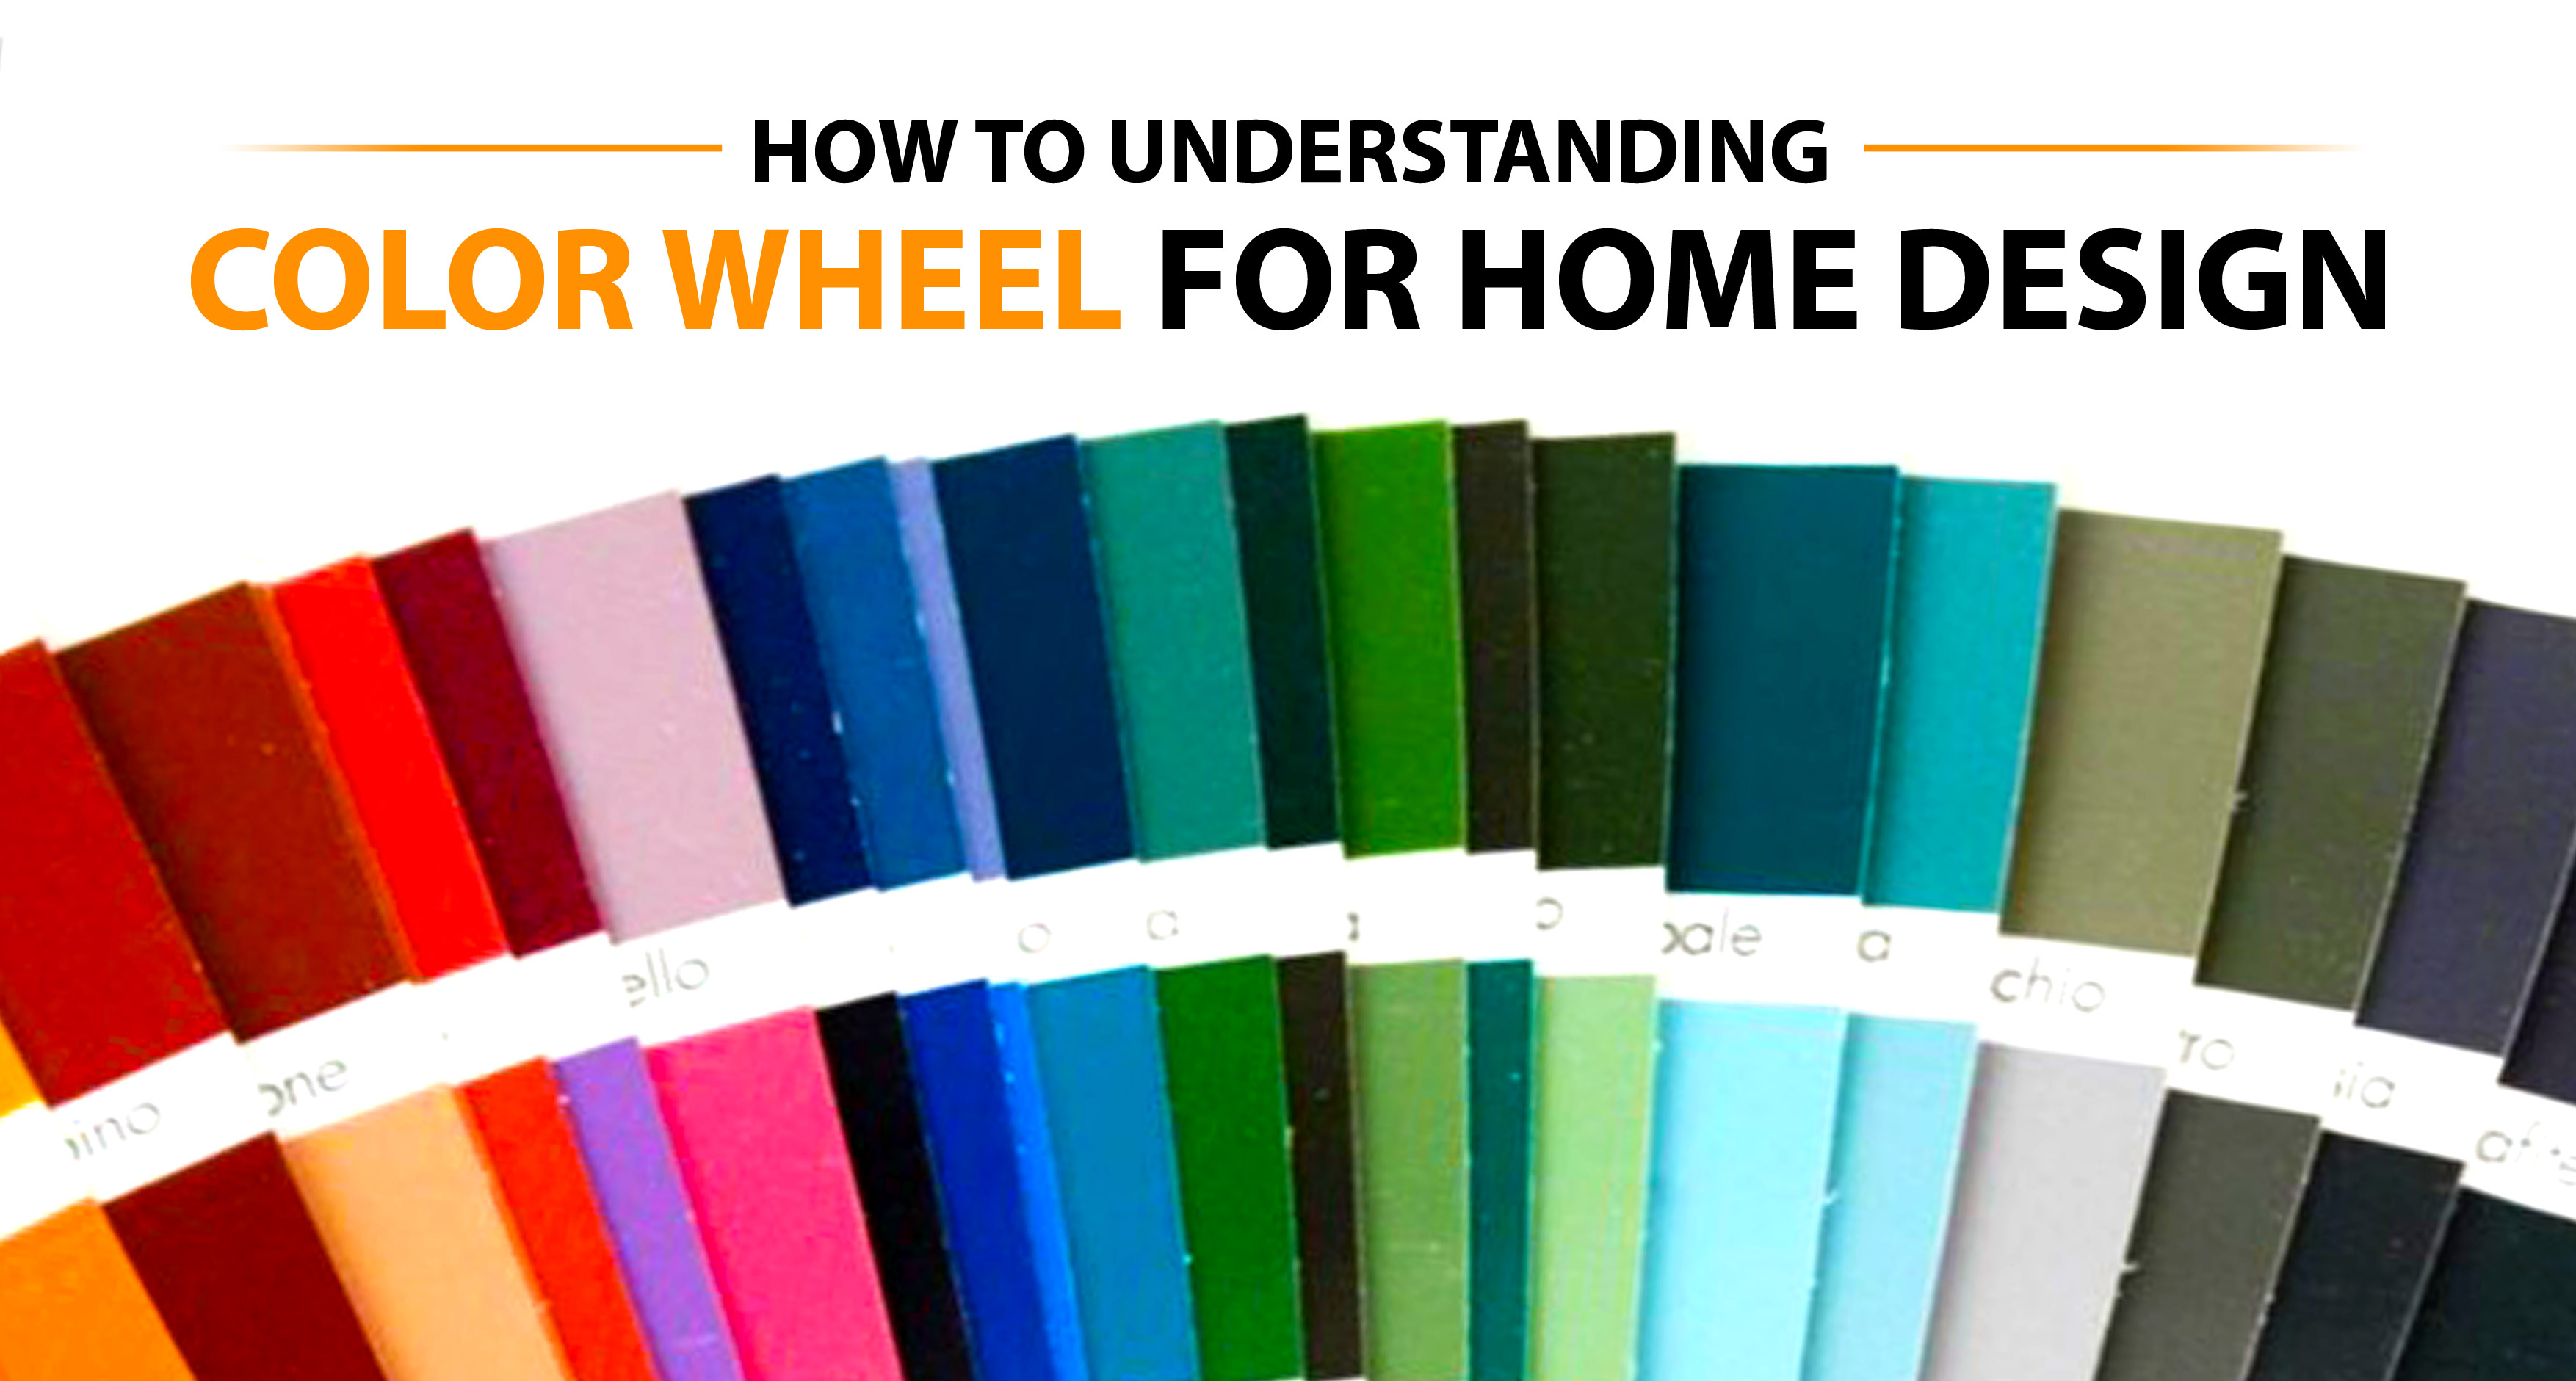 How to understanding color wheel for home design is a basic information color wheel design for interior paint colors, home decoration and more